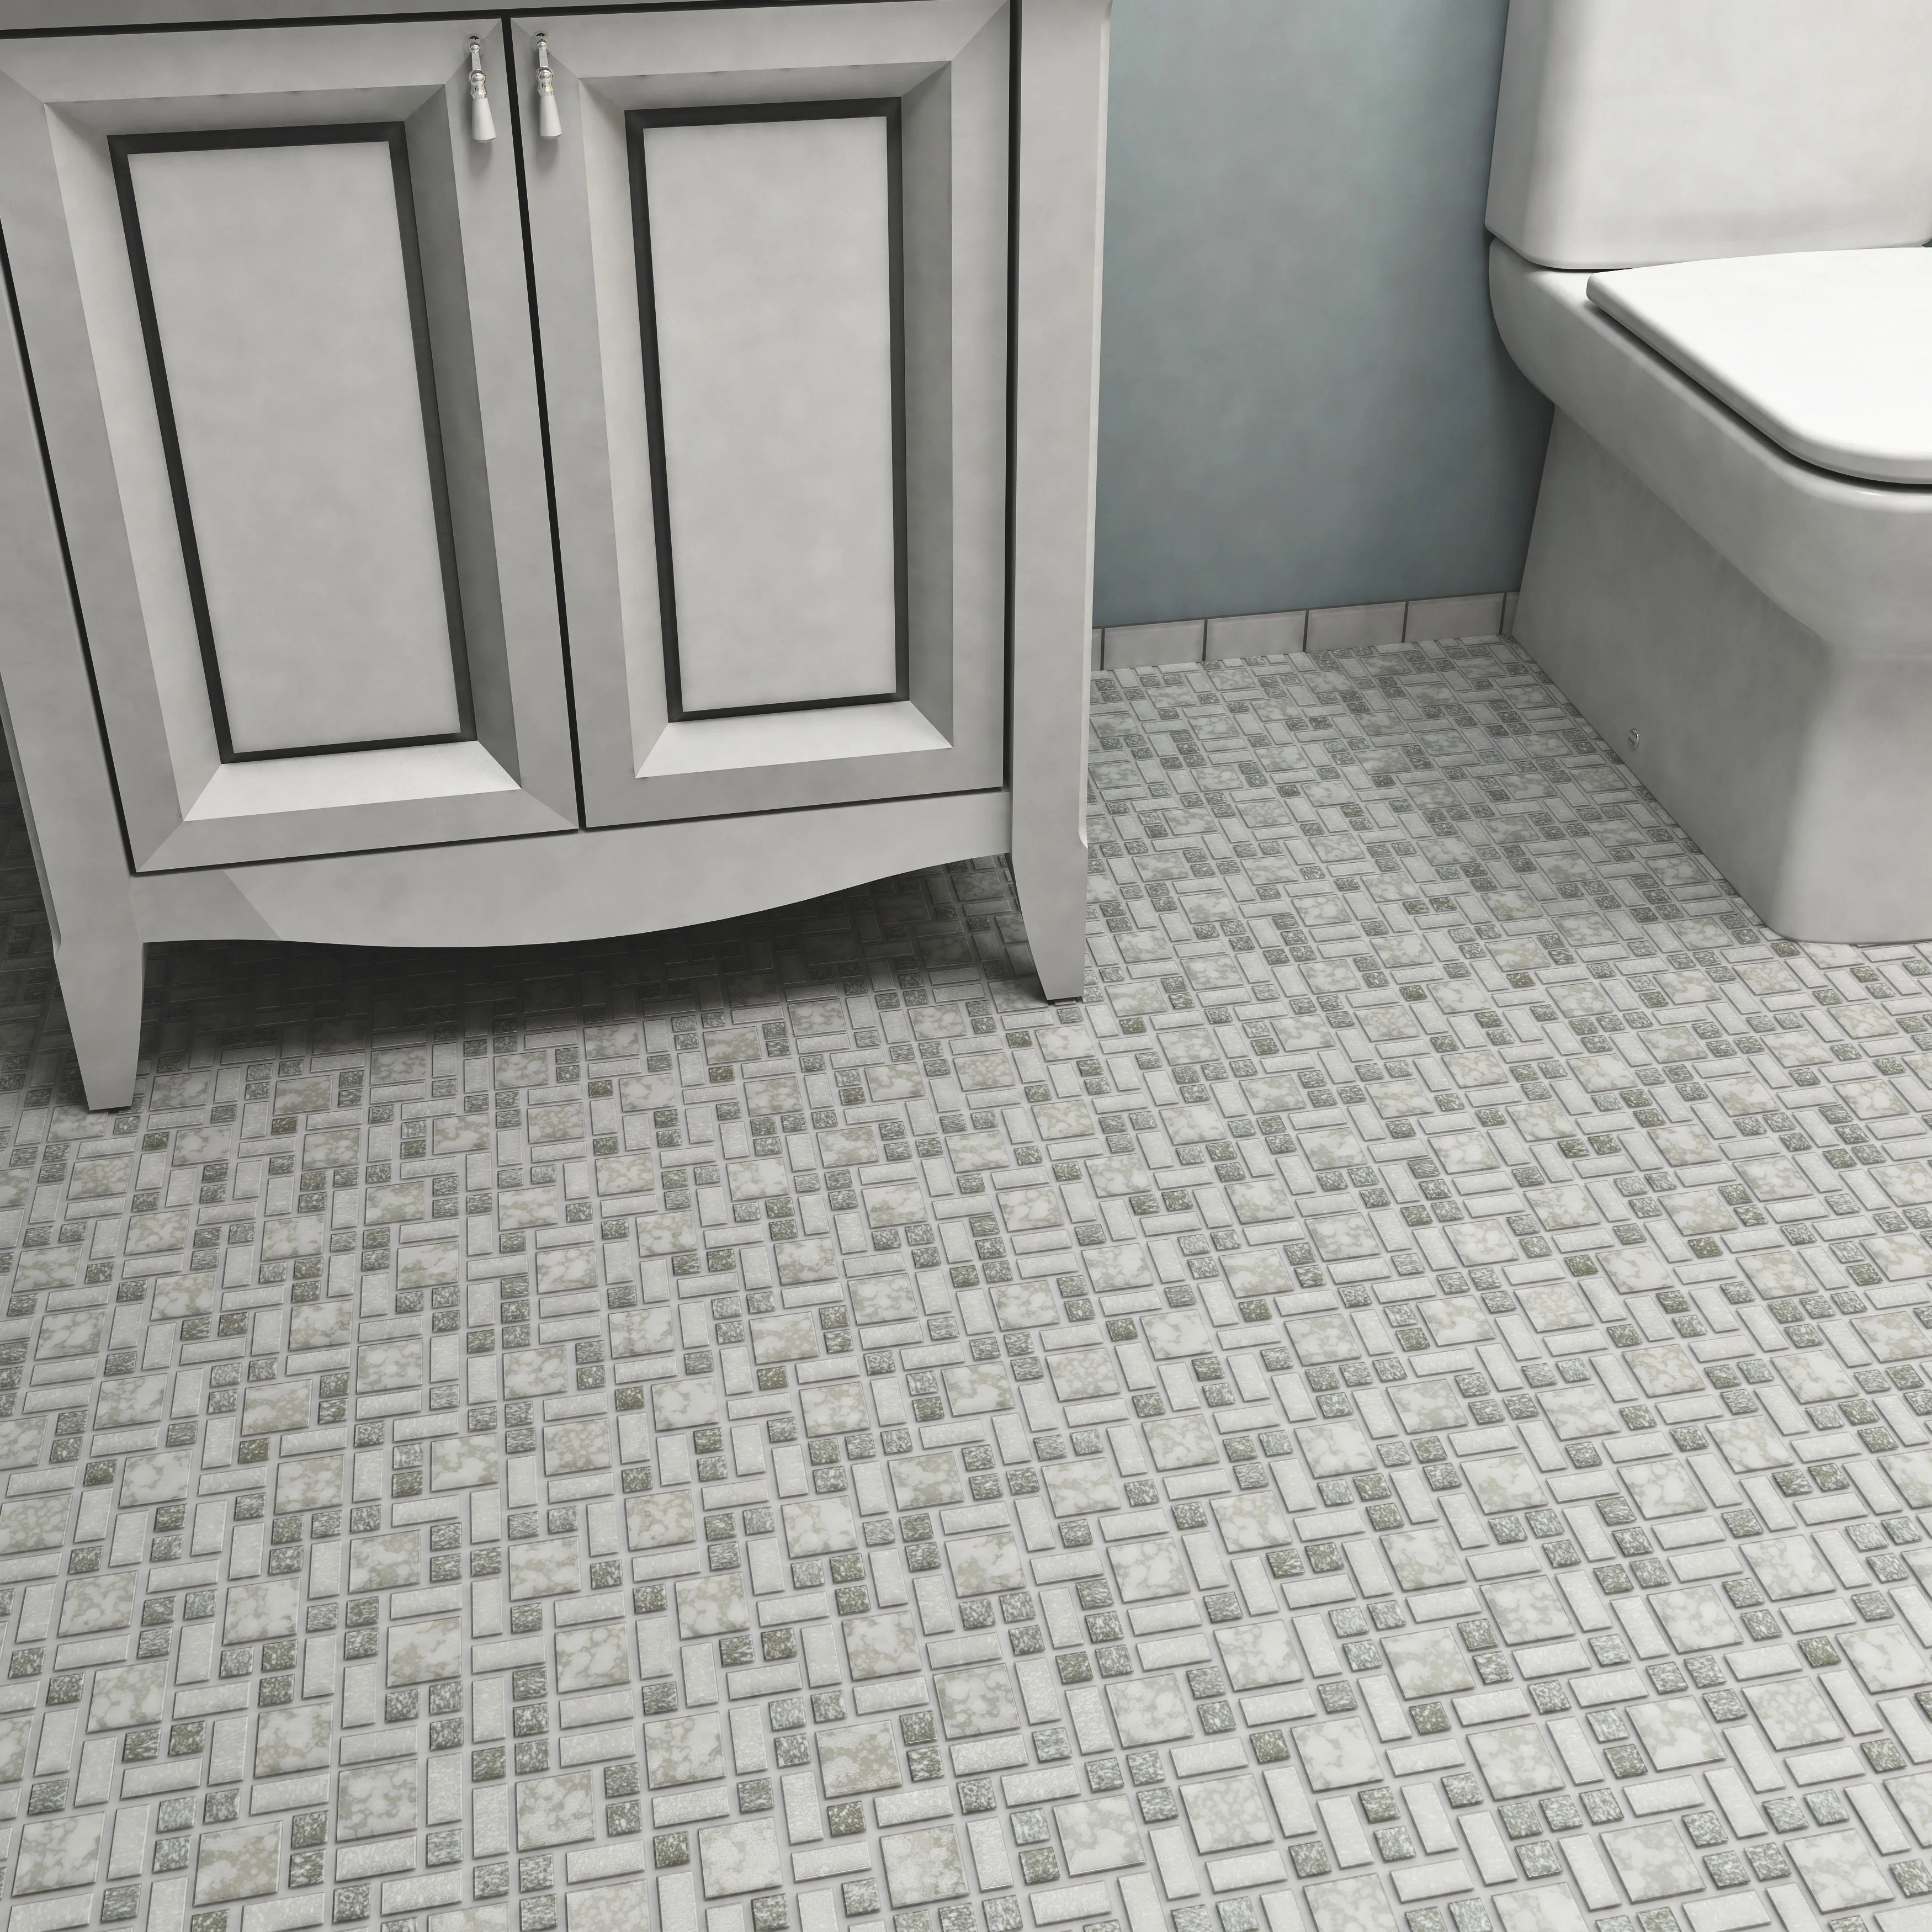 somertile 11 75x11 75 inch collegiate grey porcelain mosaic floor and wall tile